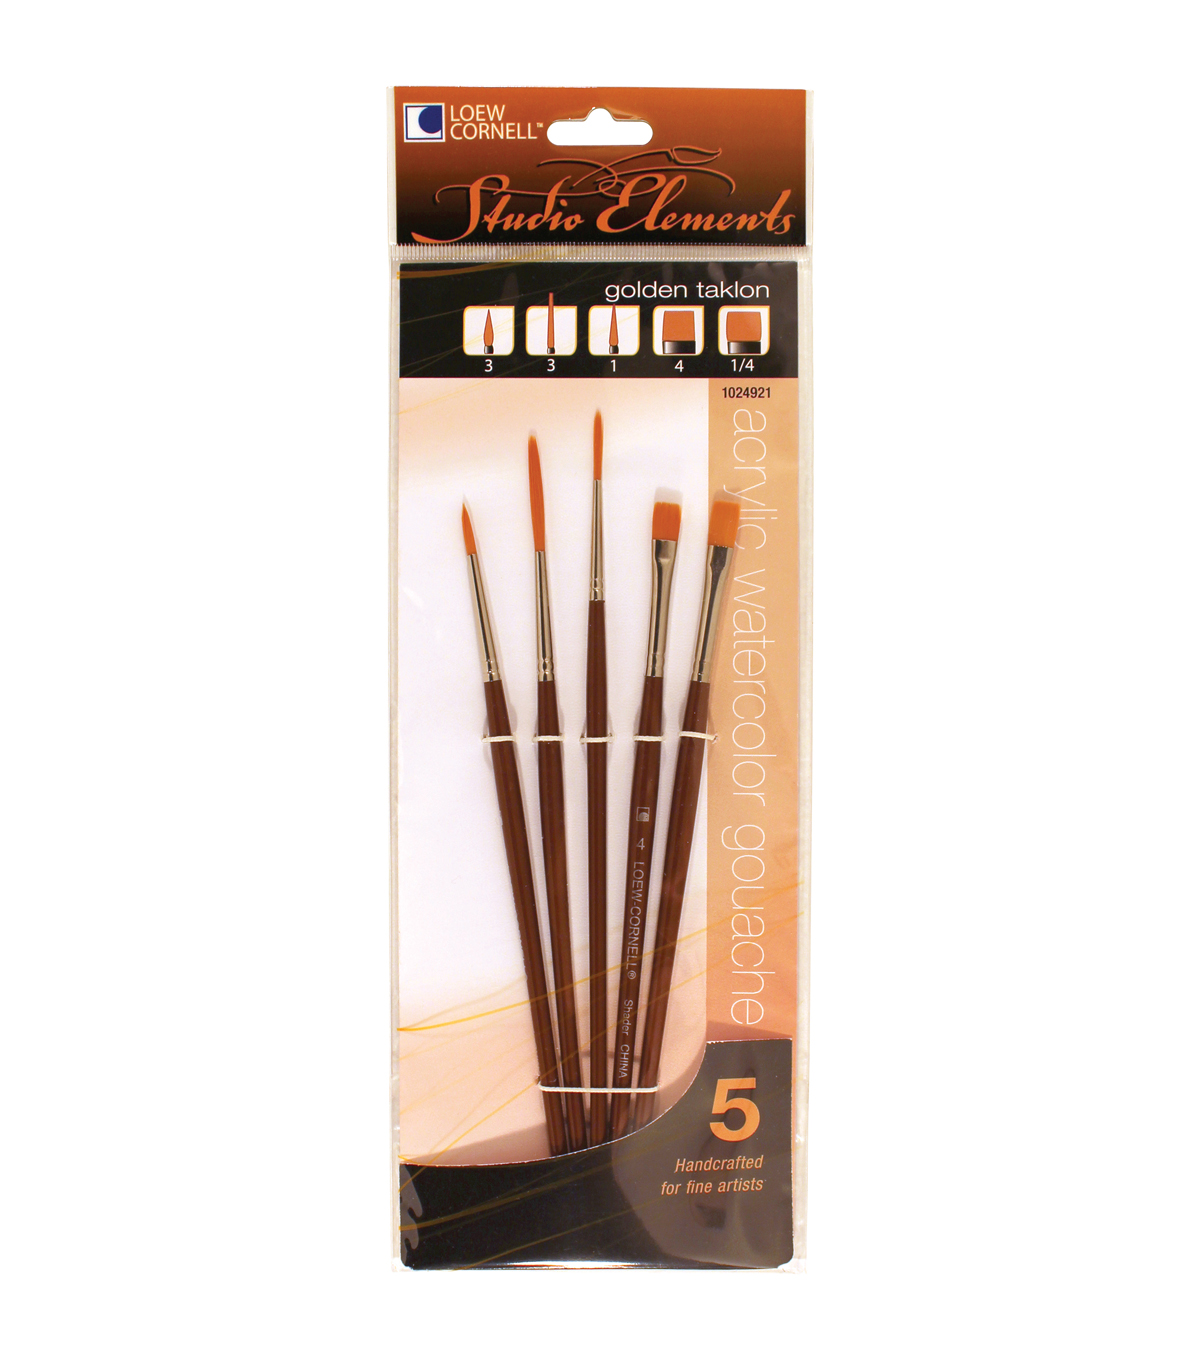 Loew-Cornell Studio Elements Liner Shader Round Golden Taklon Brushes